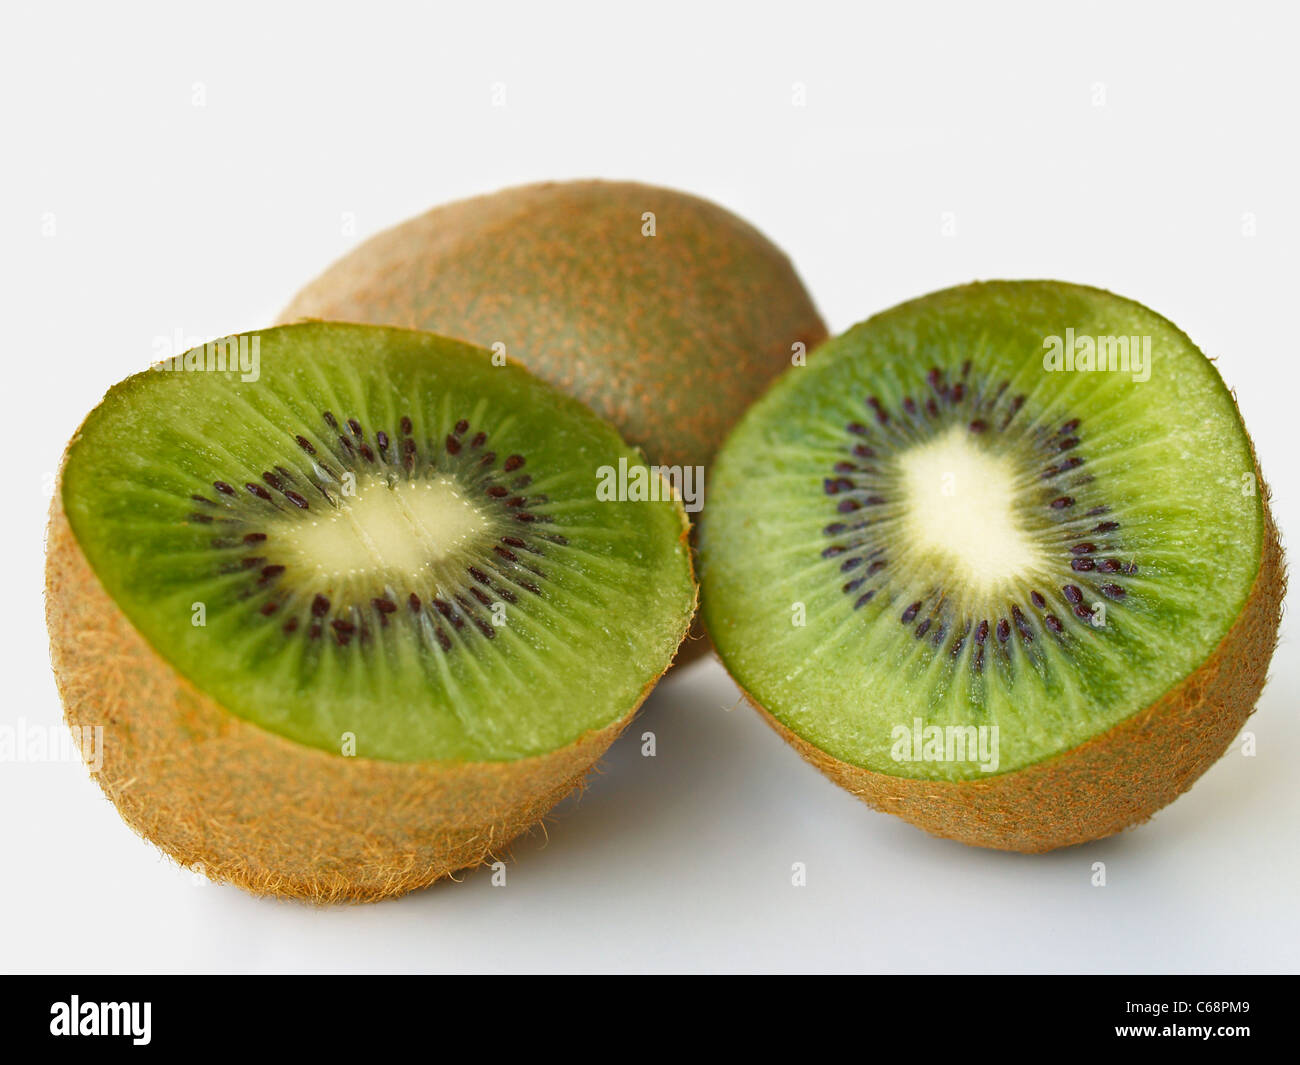 Detail photo of Kiwi fruits, in front is a sliced Kiwi fruit - Stock Image